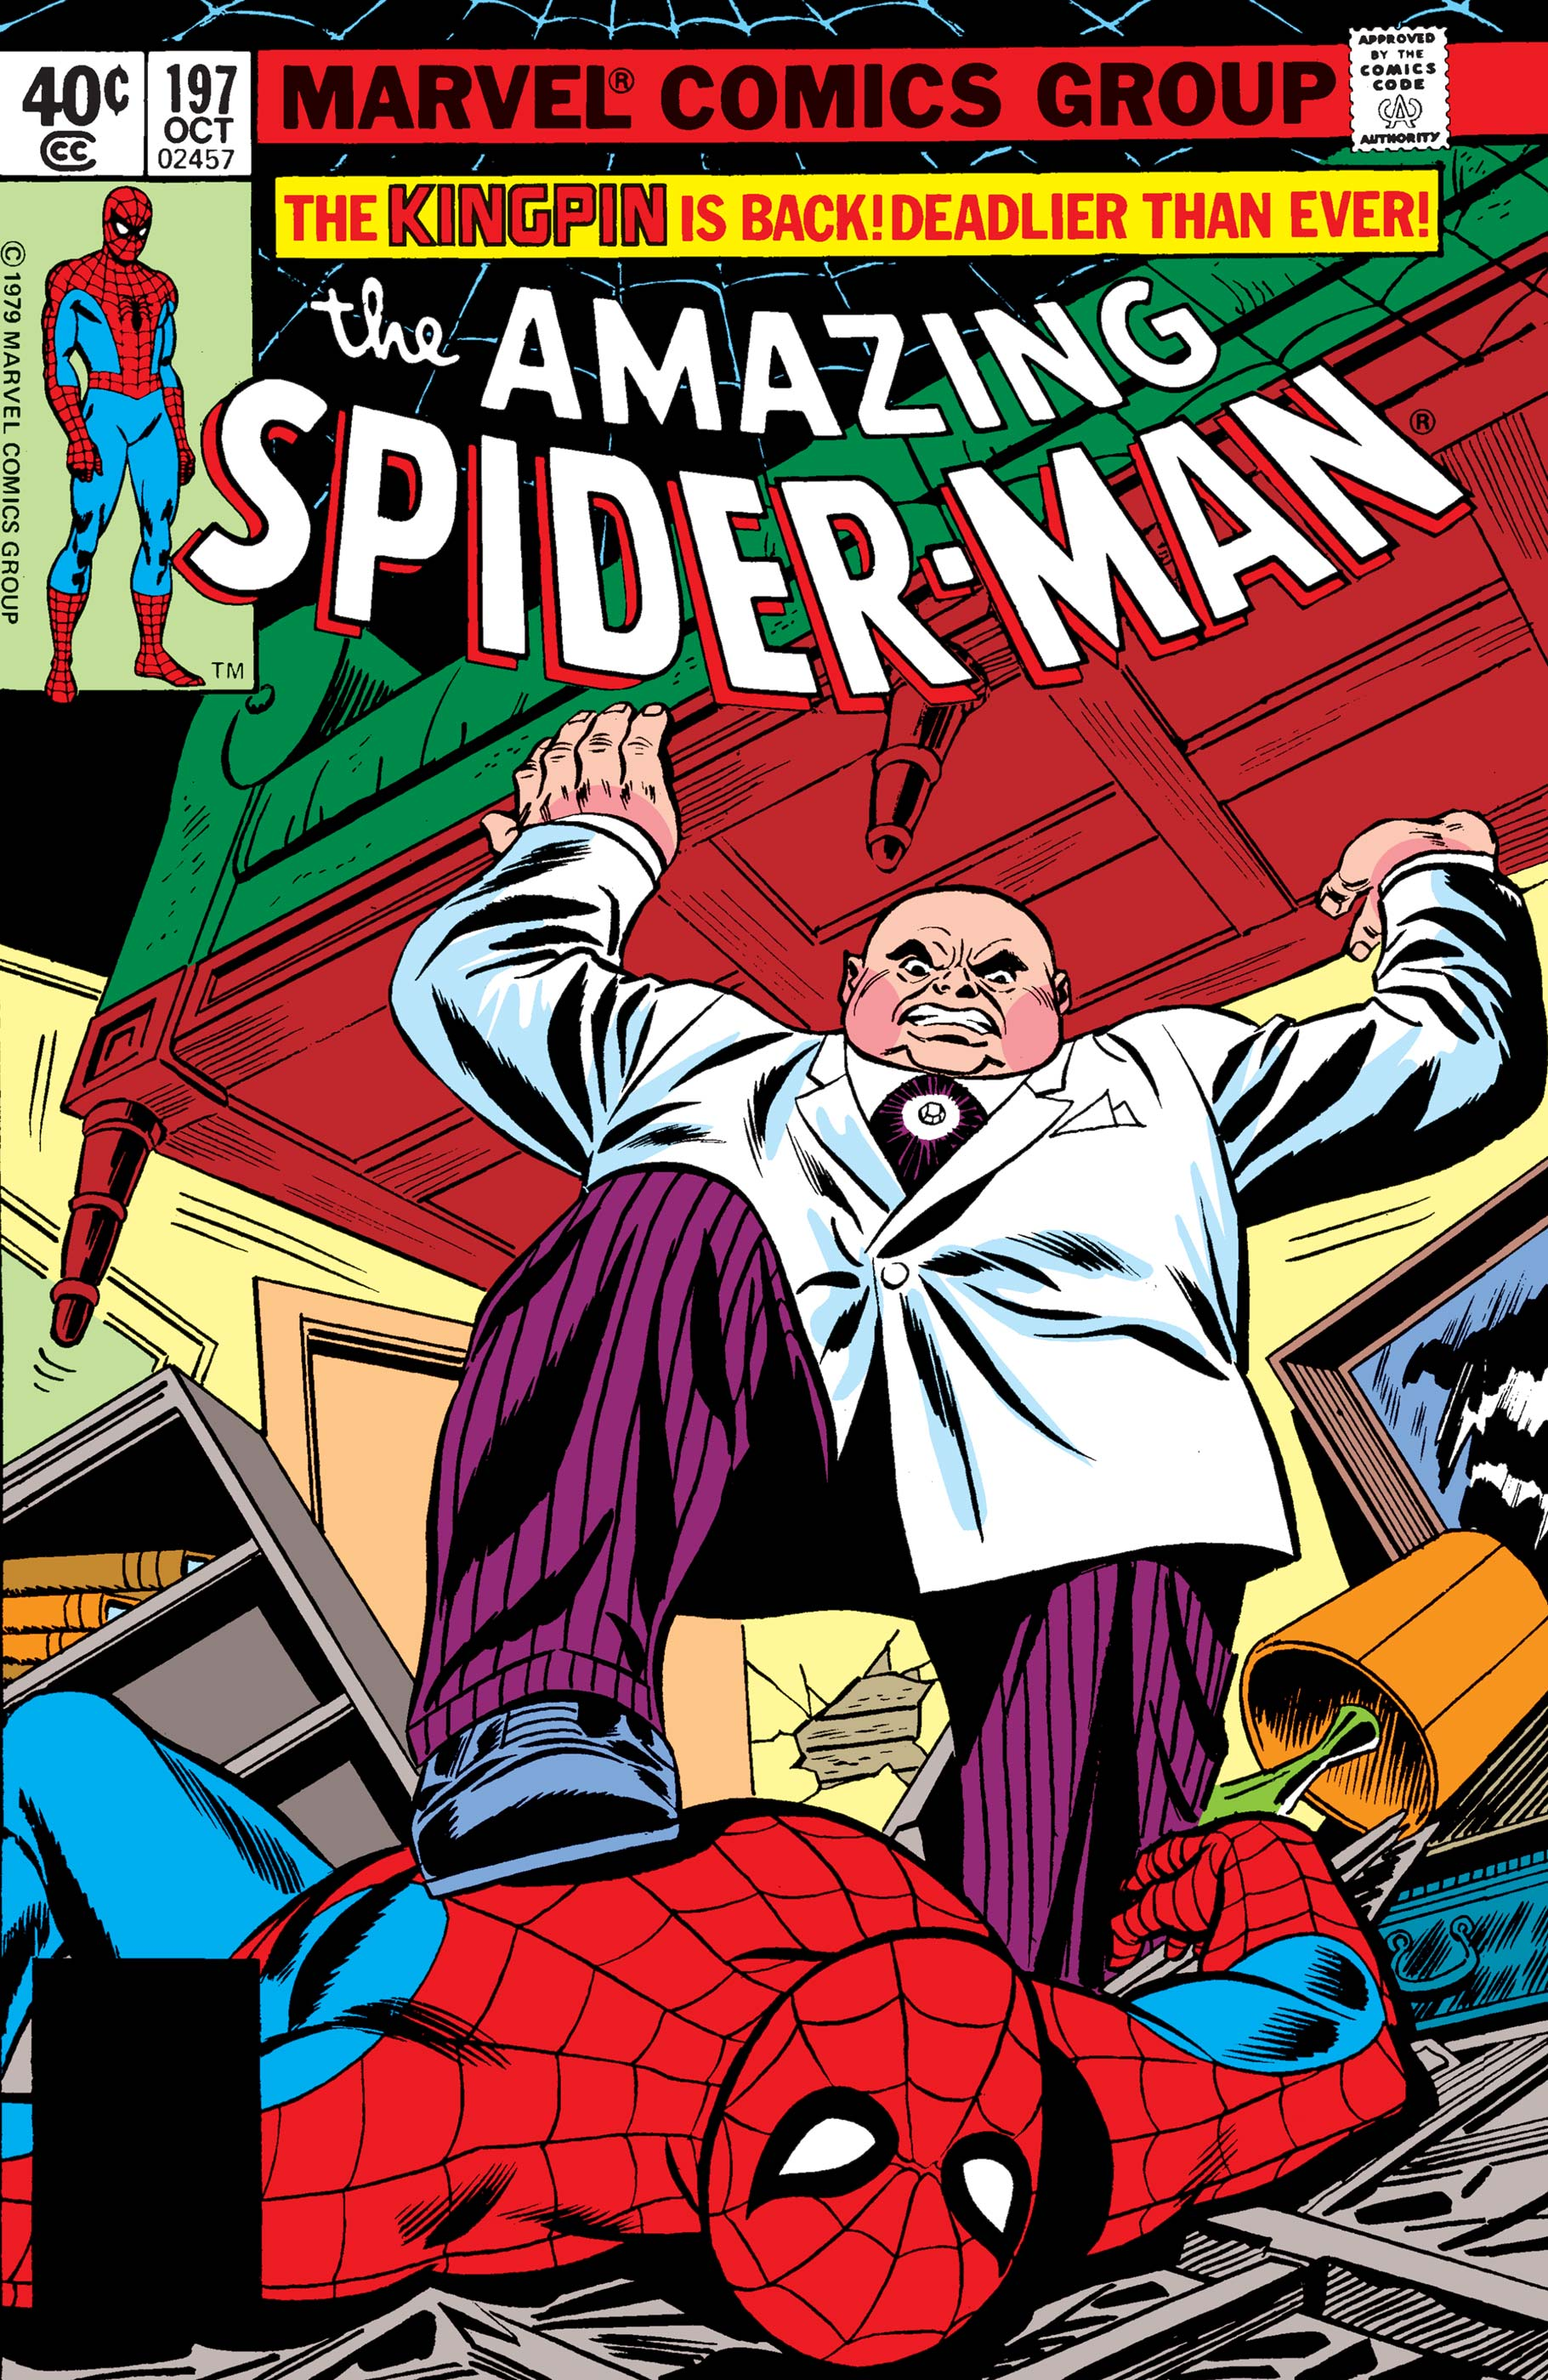 The Amazing Spider-Man (1963) #197